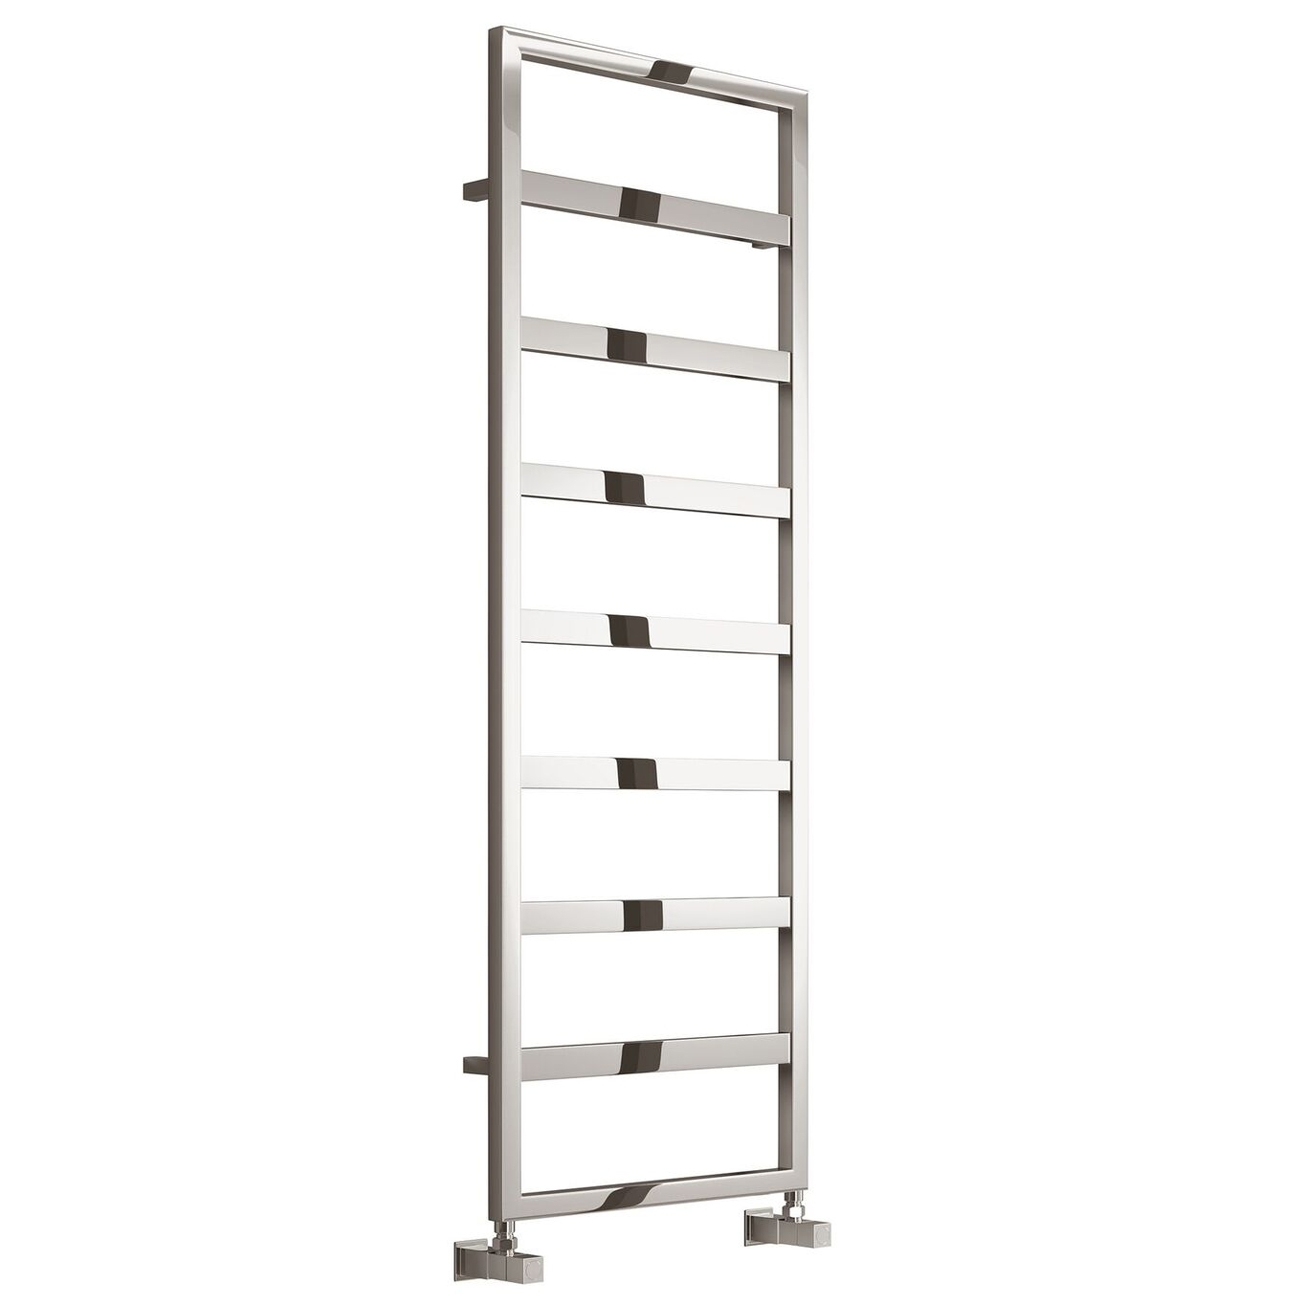 Reina Rezzo Designer Heated Towel Rail 1460mm H x 550mm W Chrome-0